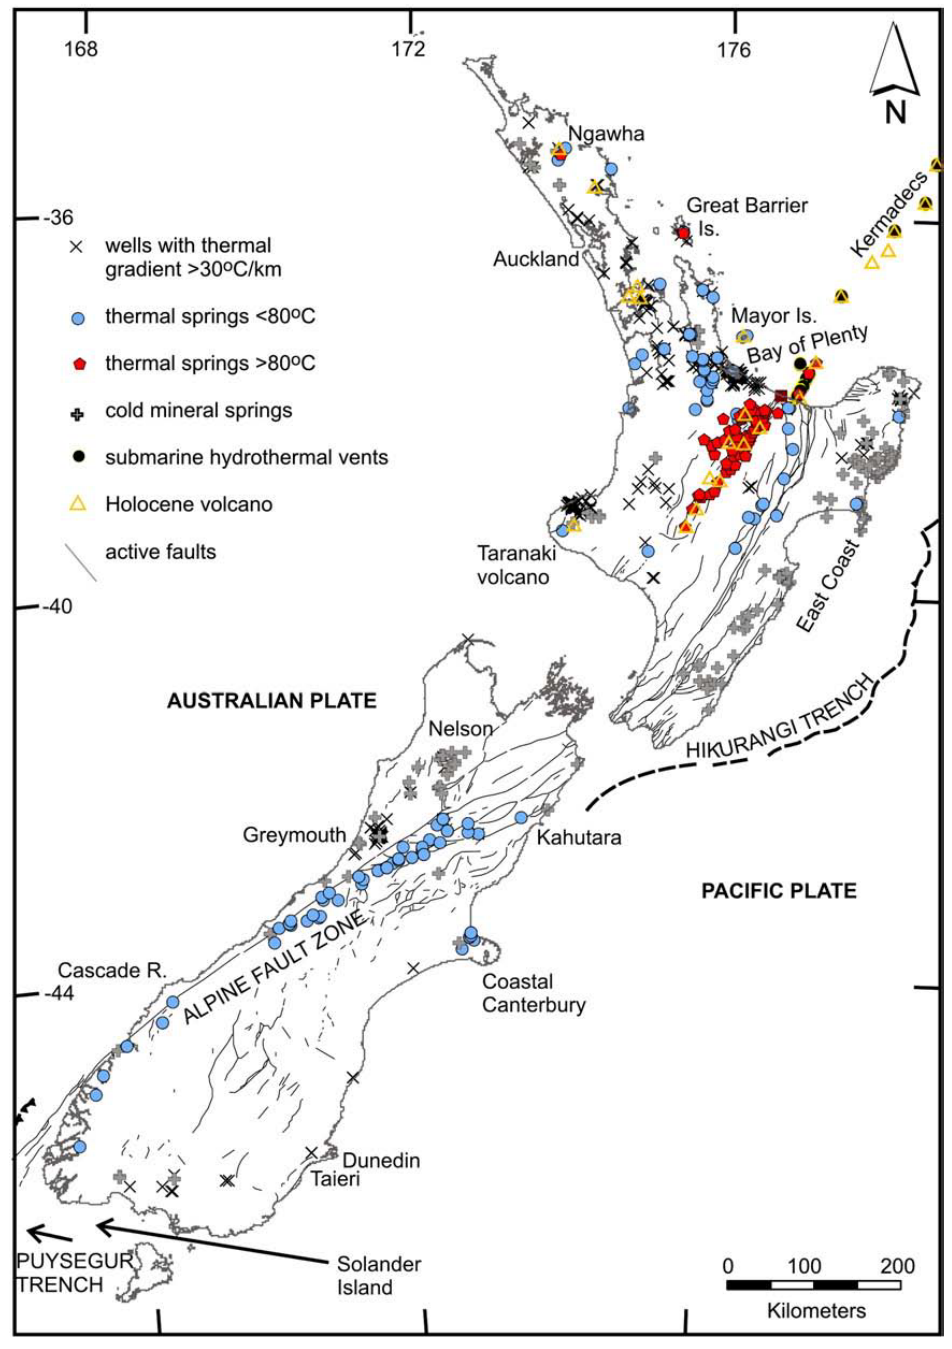 Thermal and cold mineral springs, and wells with elevated thermal gradients in New Zealand (Reyes et al., 2010). Note the concentration of springs along the Alpine Fault, and the wells with elevated geothermal gradients near Greymouth.